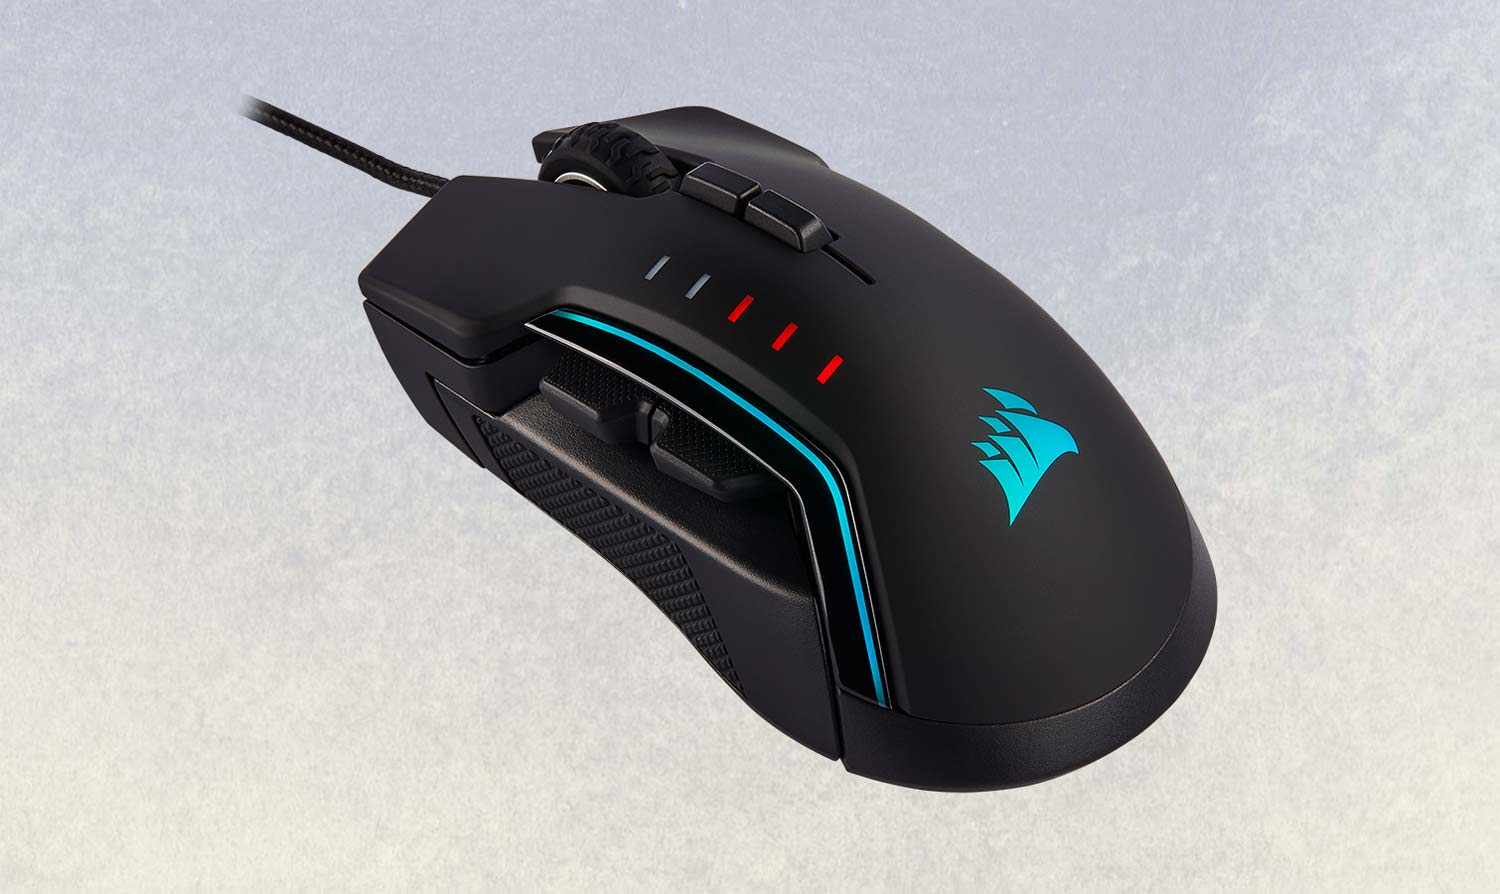 Corsair Glaive RGB Pro Review: A Solid Gaming Mouse with